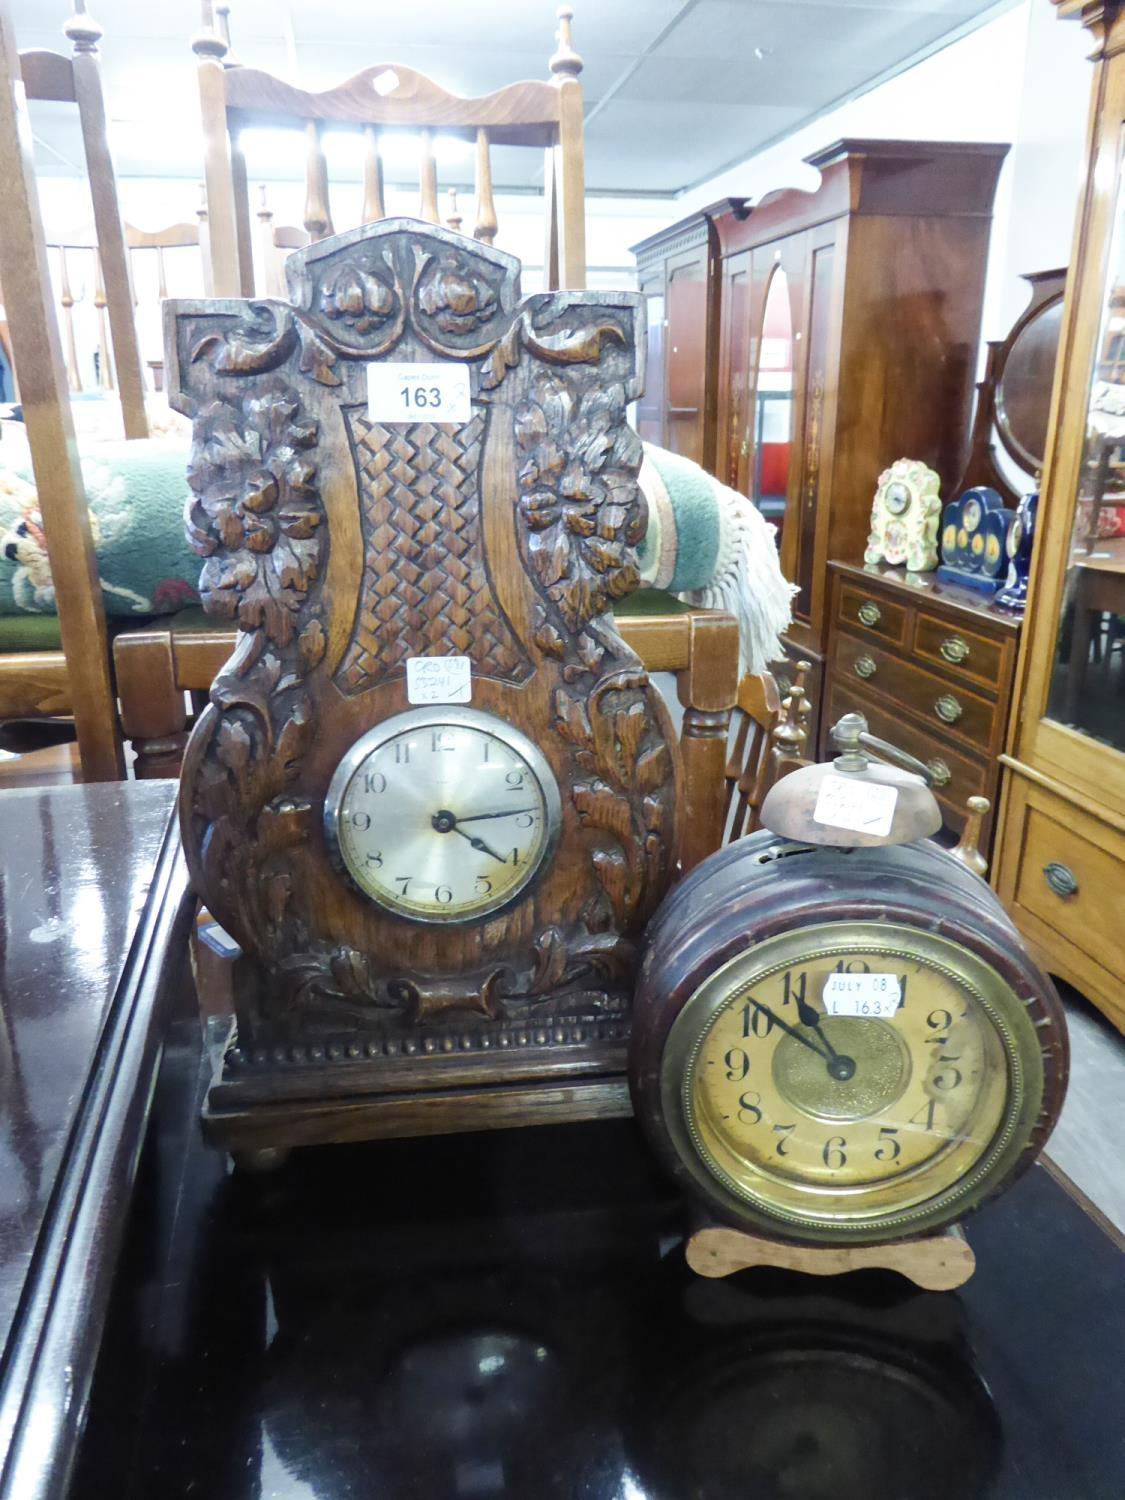 Lot 163 - CIRCA 1920's TALL MANTEL CLOCK WITH PLATED DRUM SHAPED 8 DAY MOVEMENT IN OAK CASE WITH FOLIATE AND